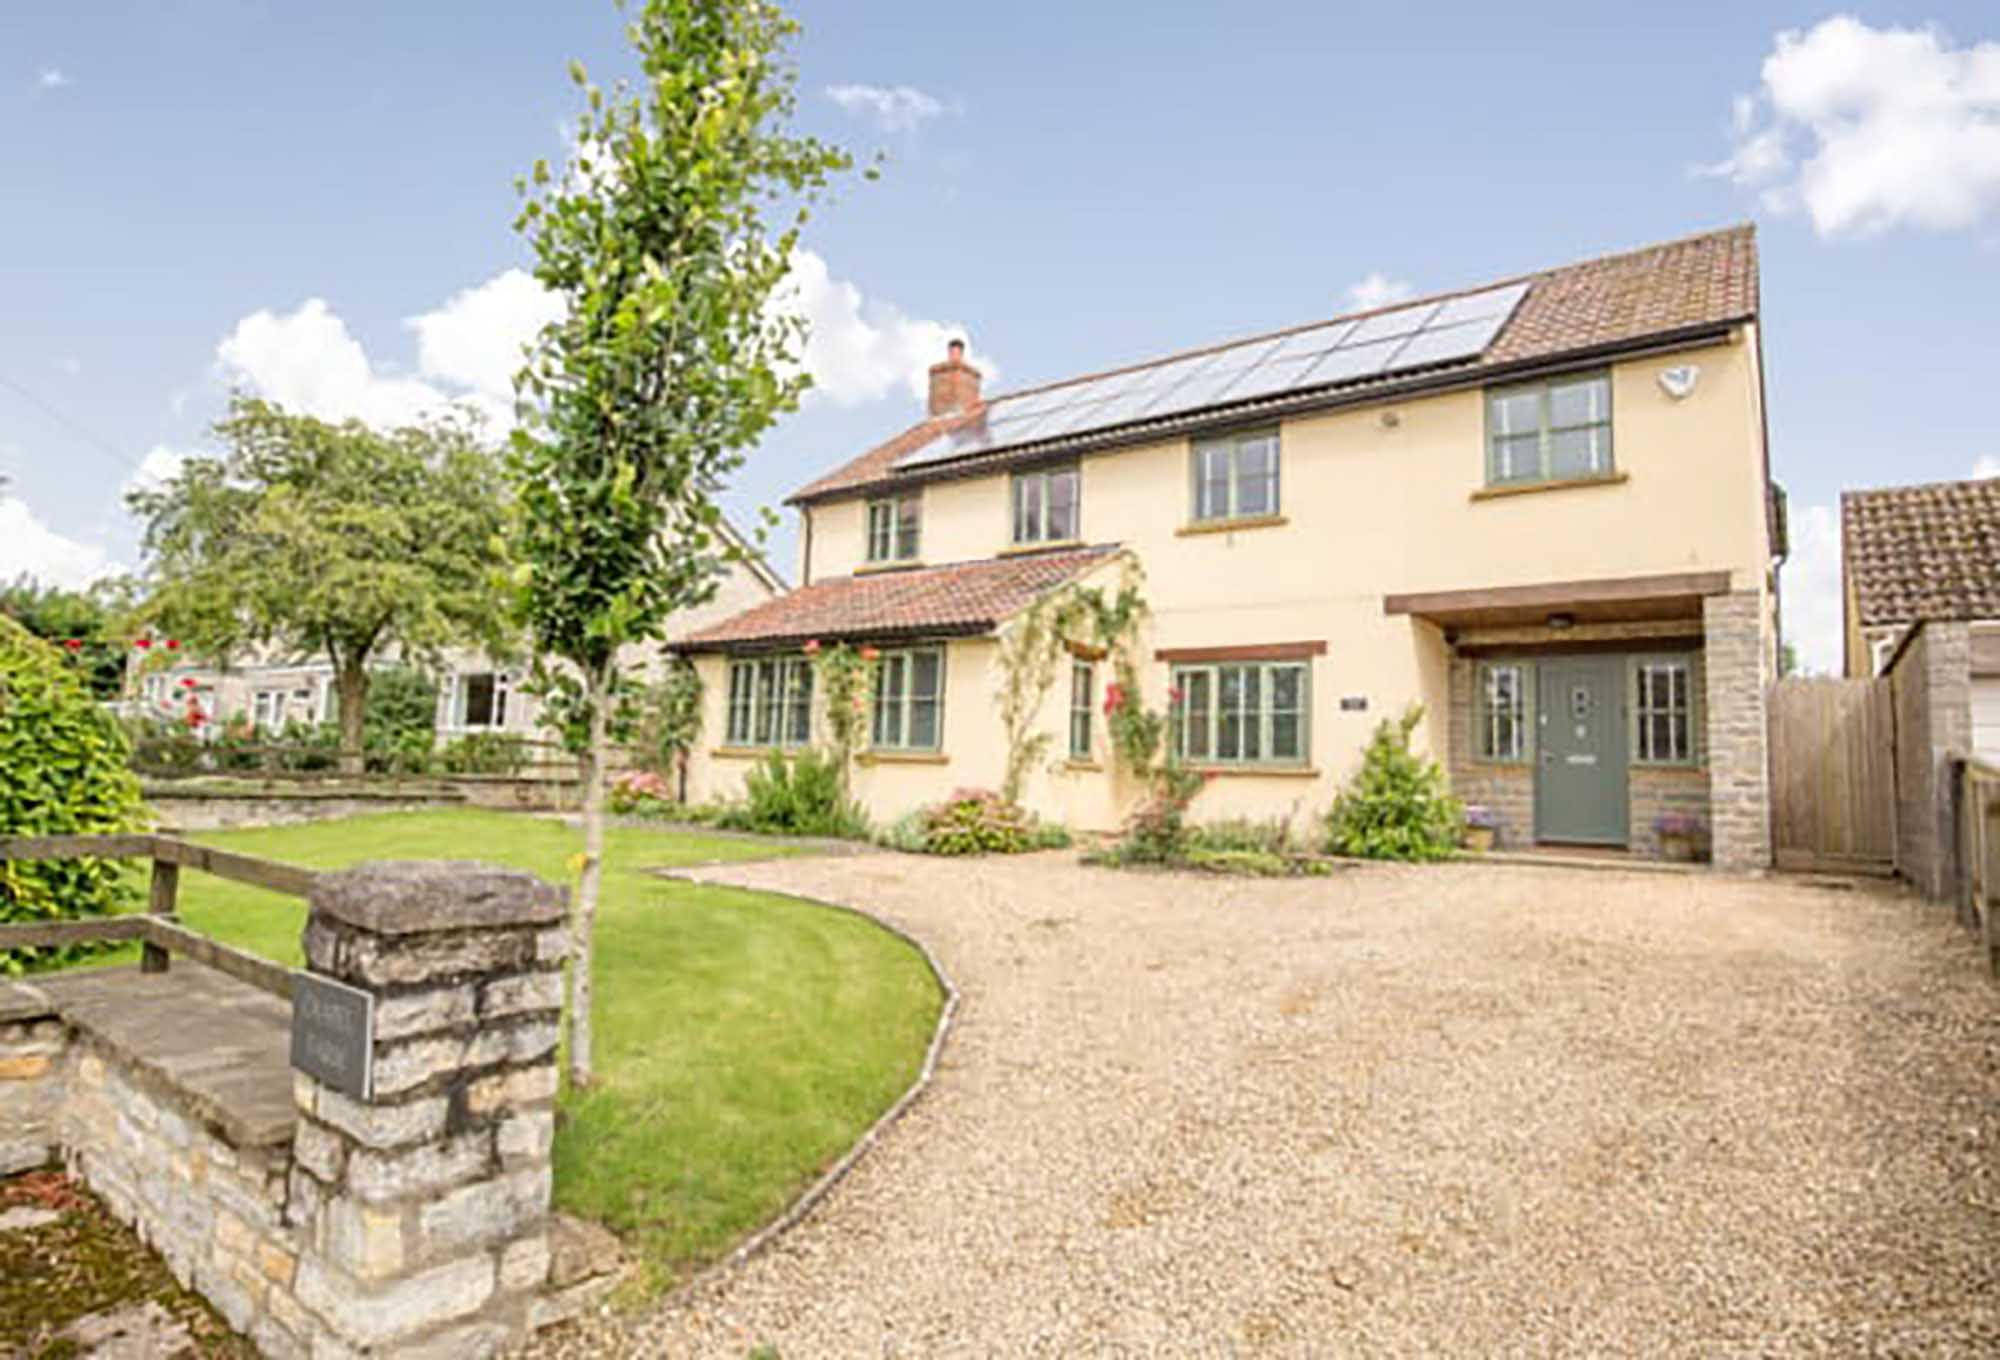 Spacious modern 5 bedroom  house in the very popular village of Babcary